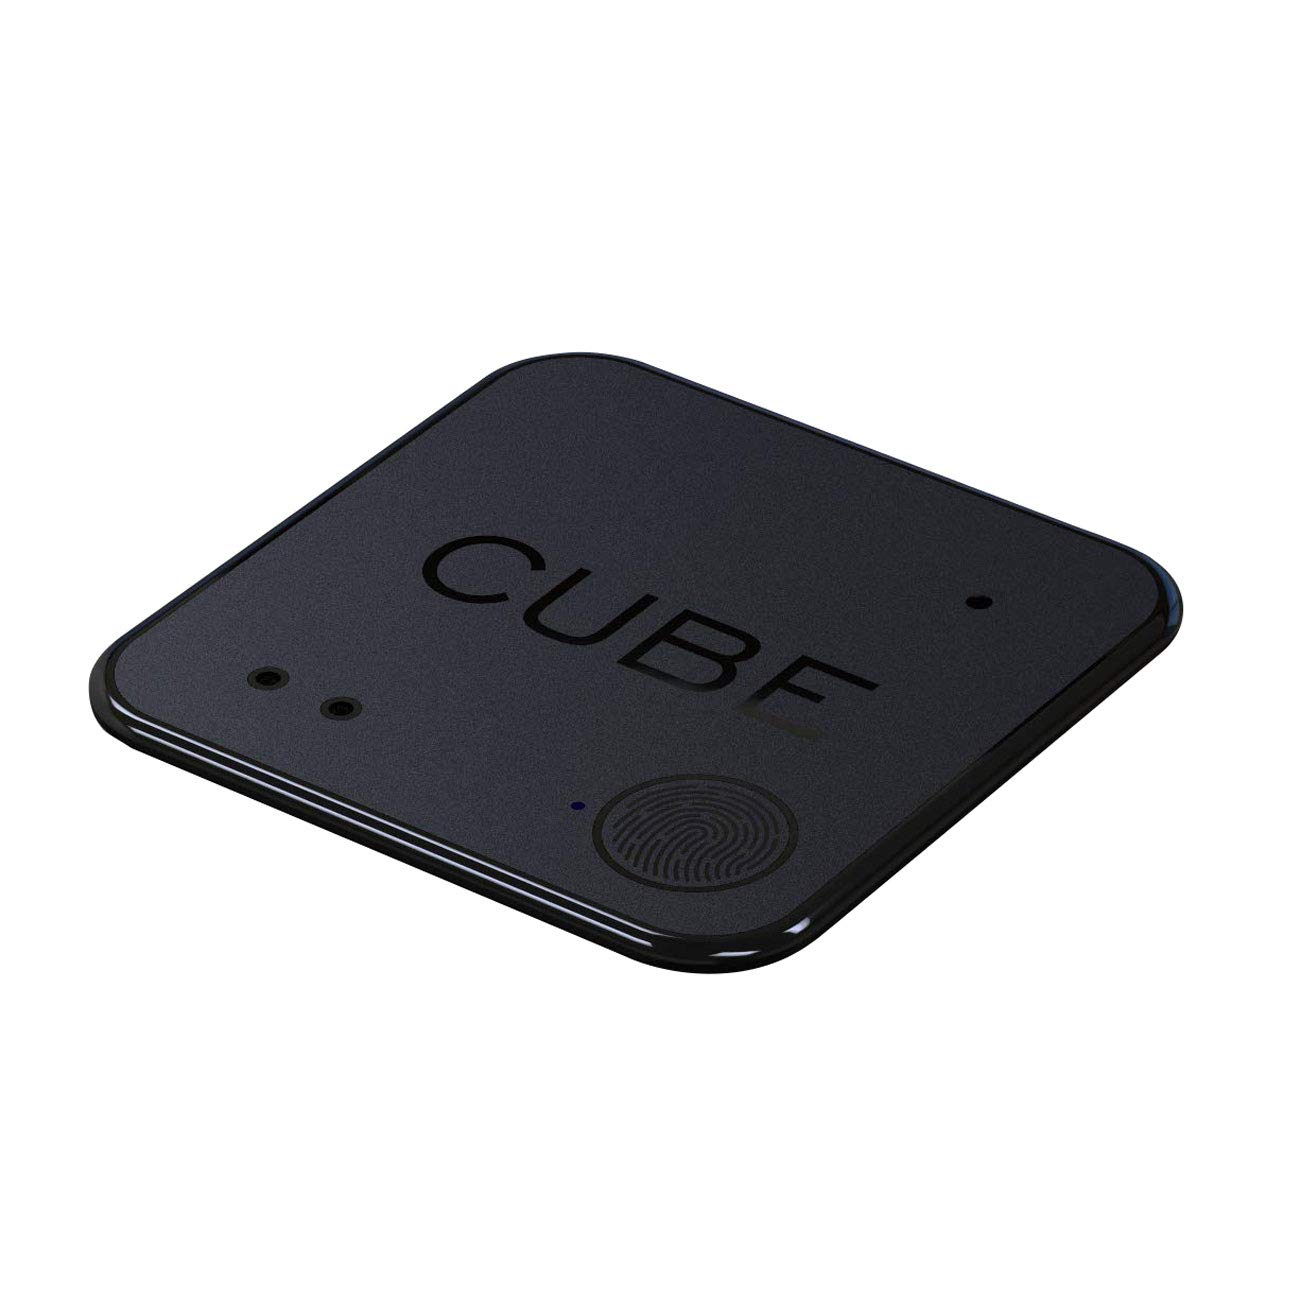 Cube Shadow Item Finder Ultra Thin Tracker Rechargable Battery Wallet Remote Control Bluetooth Locator